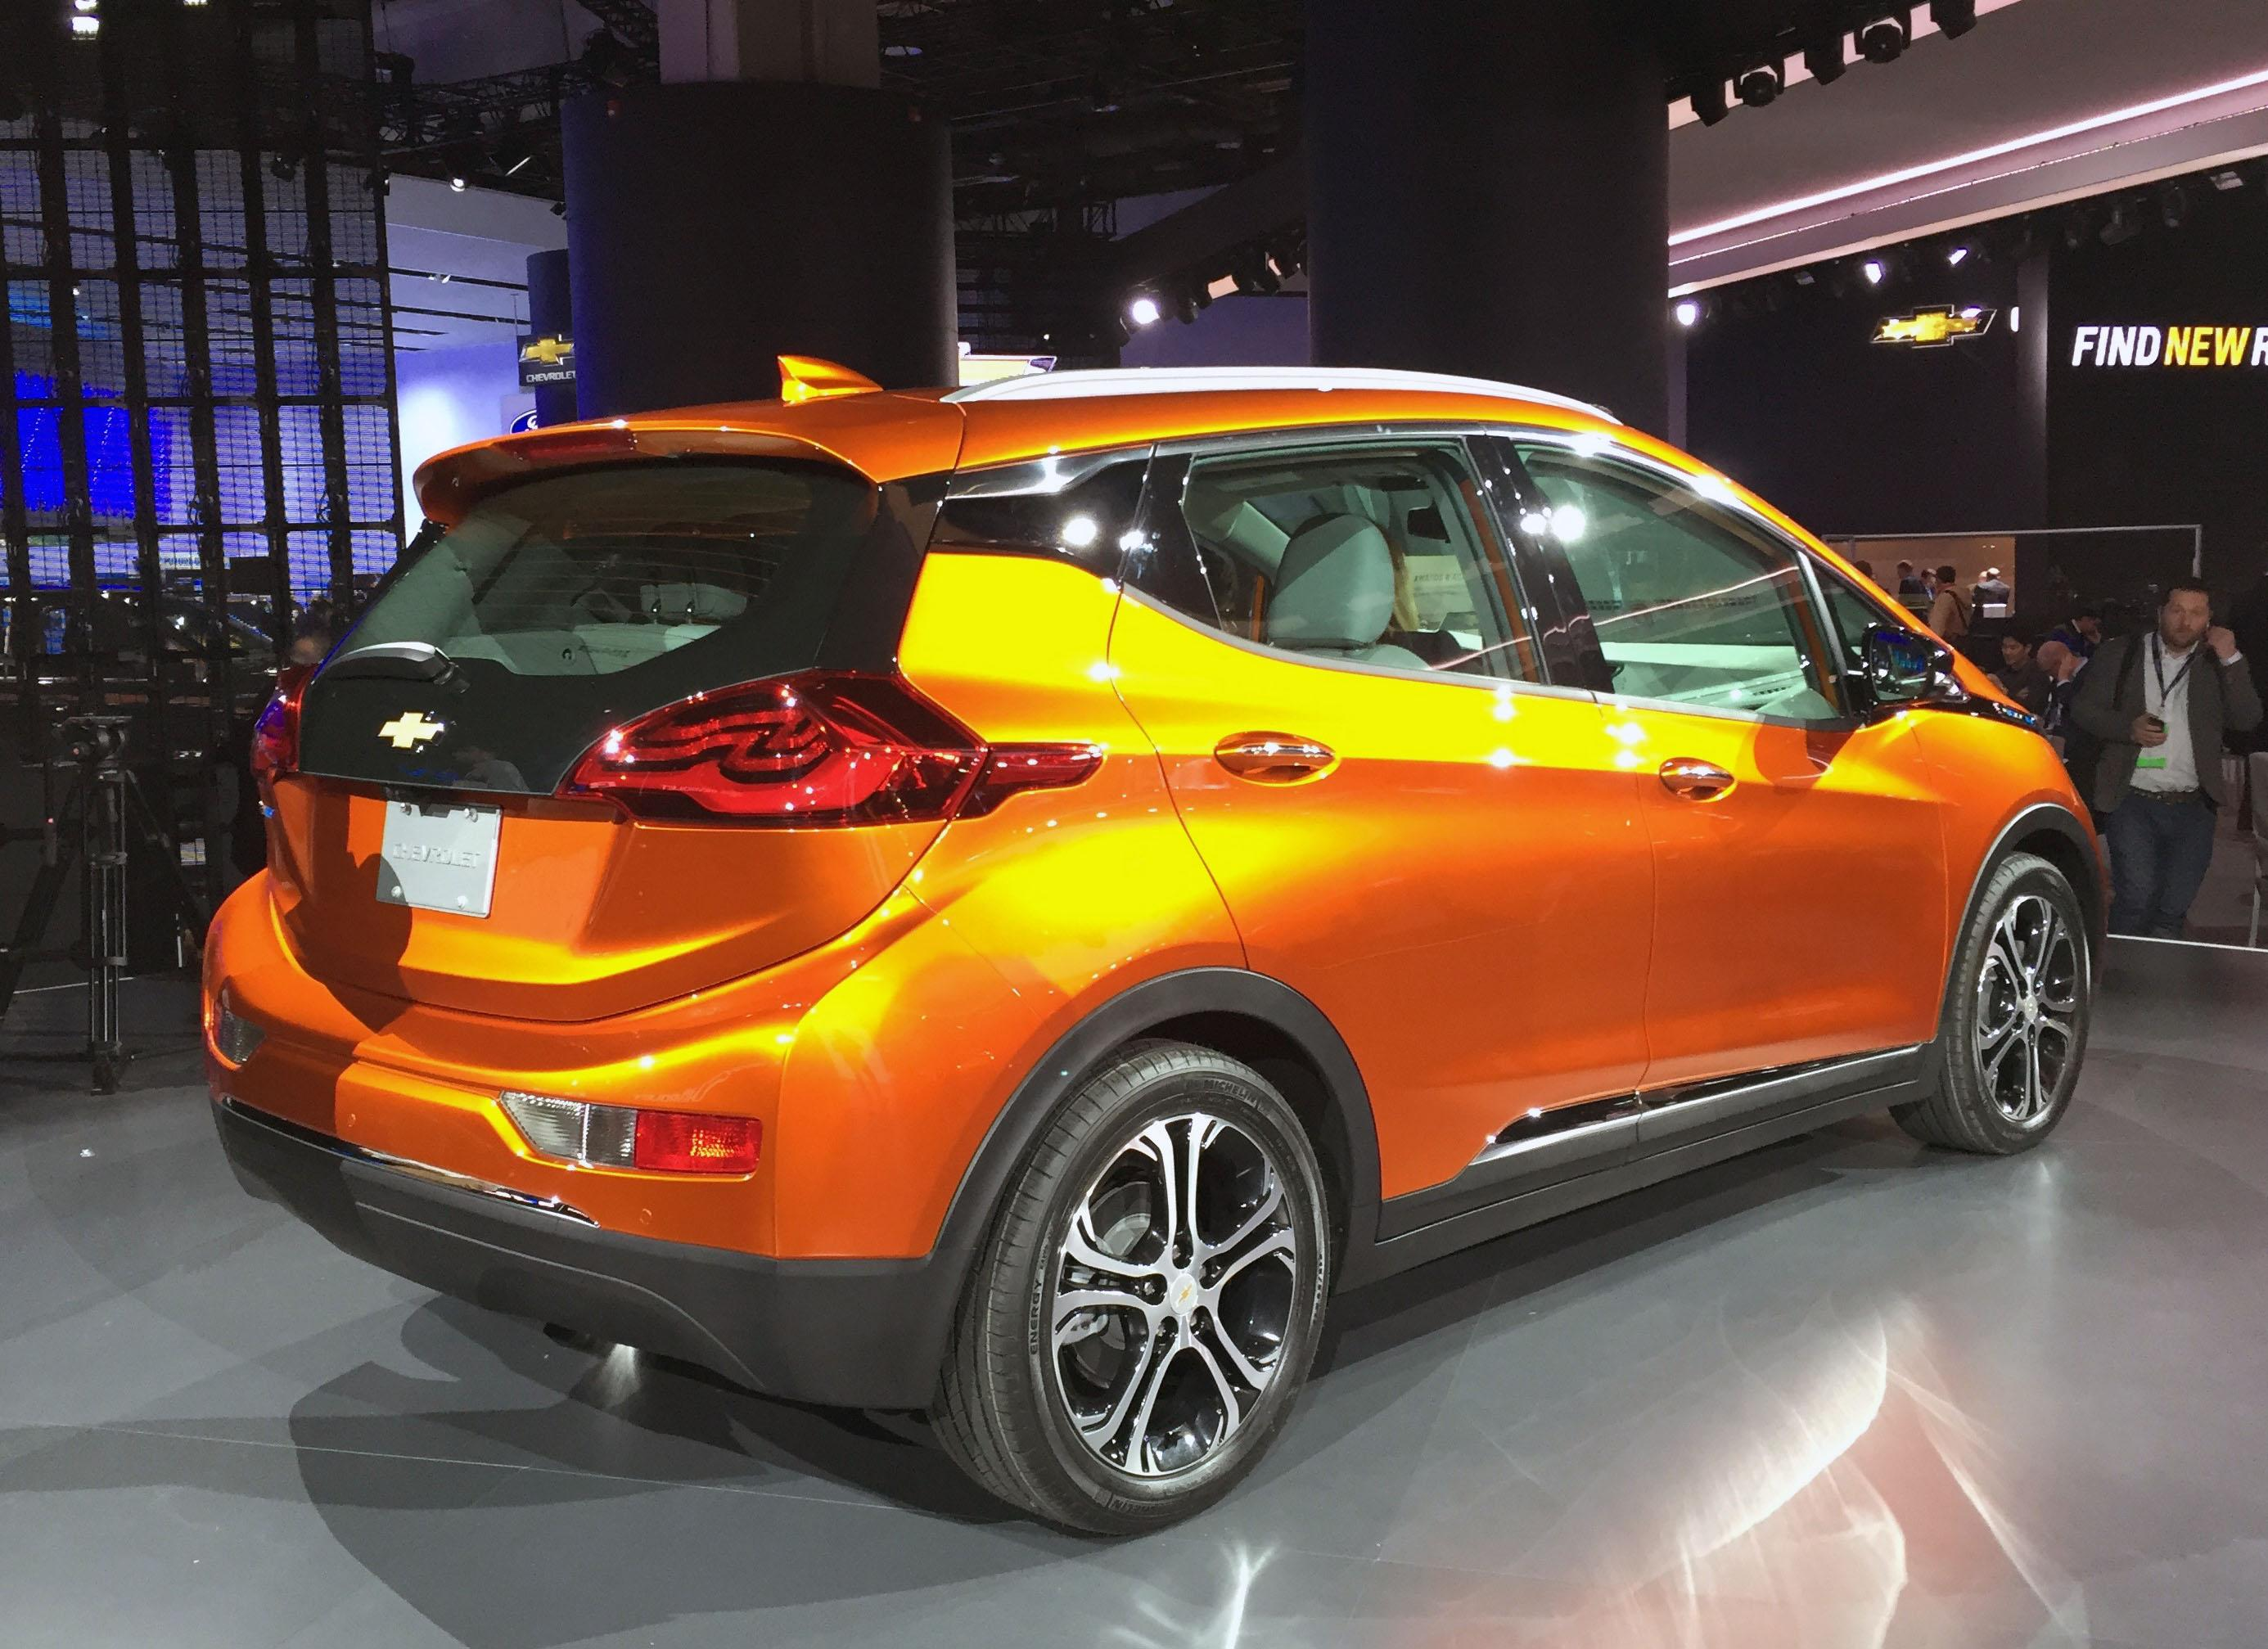 2017 Chevrolet Bolt (Photo by Jill Ciminillo)